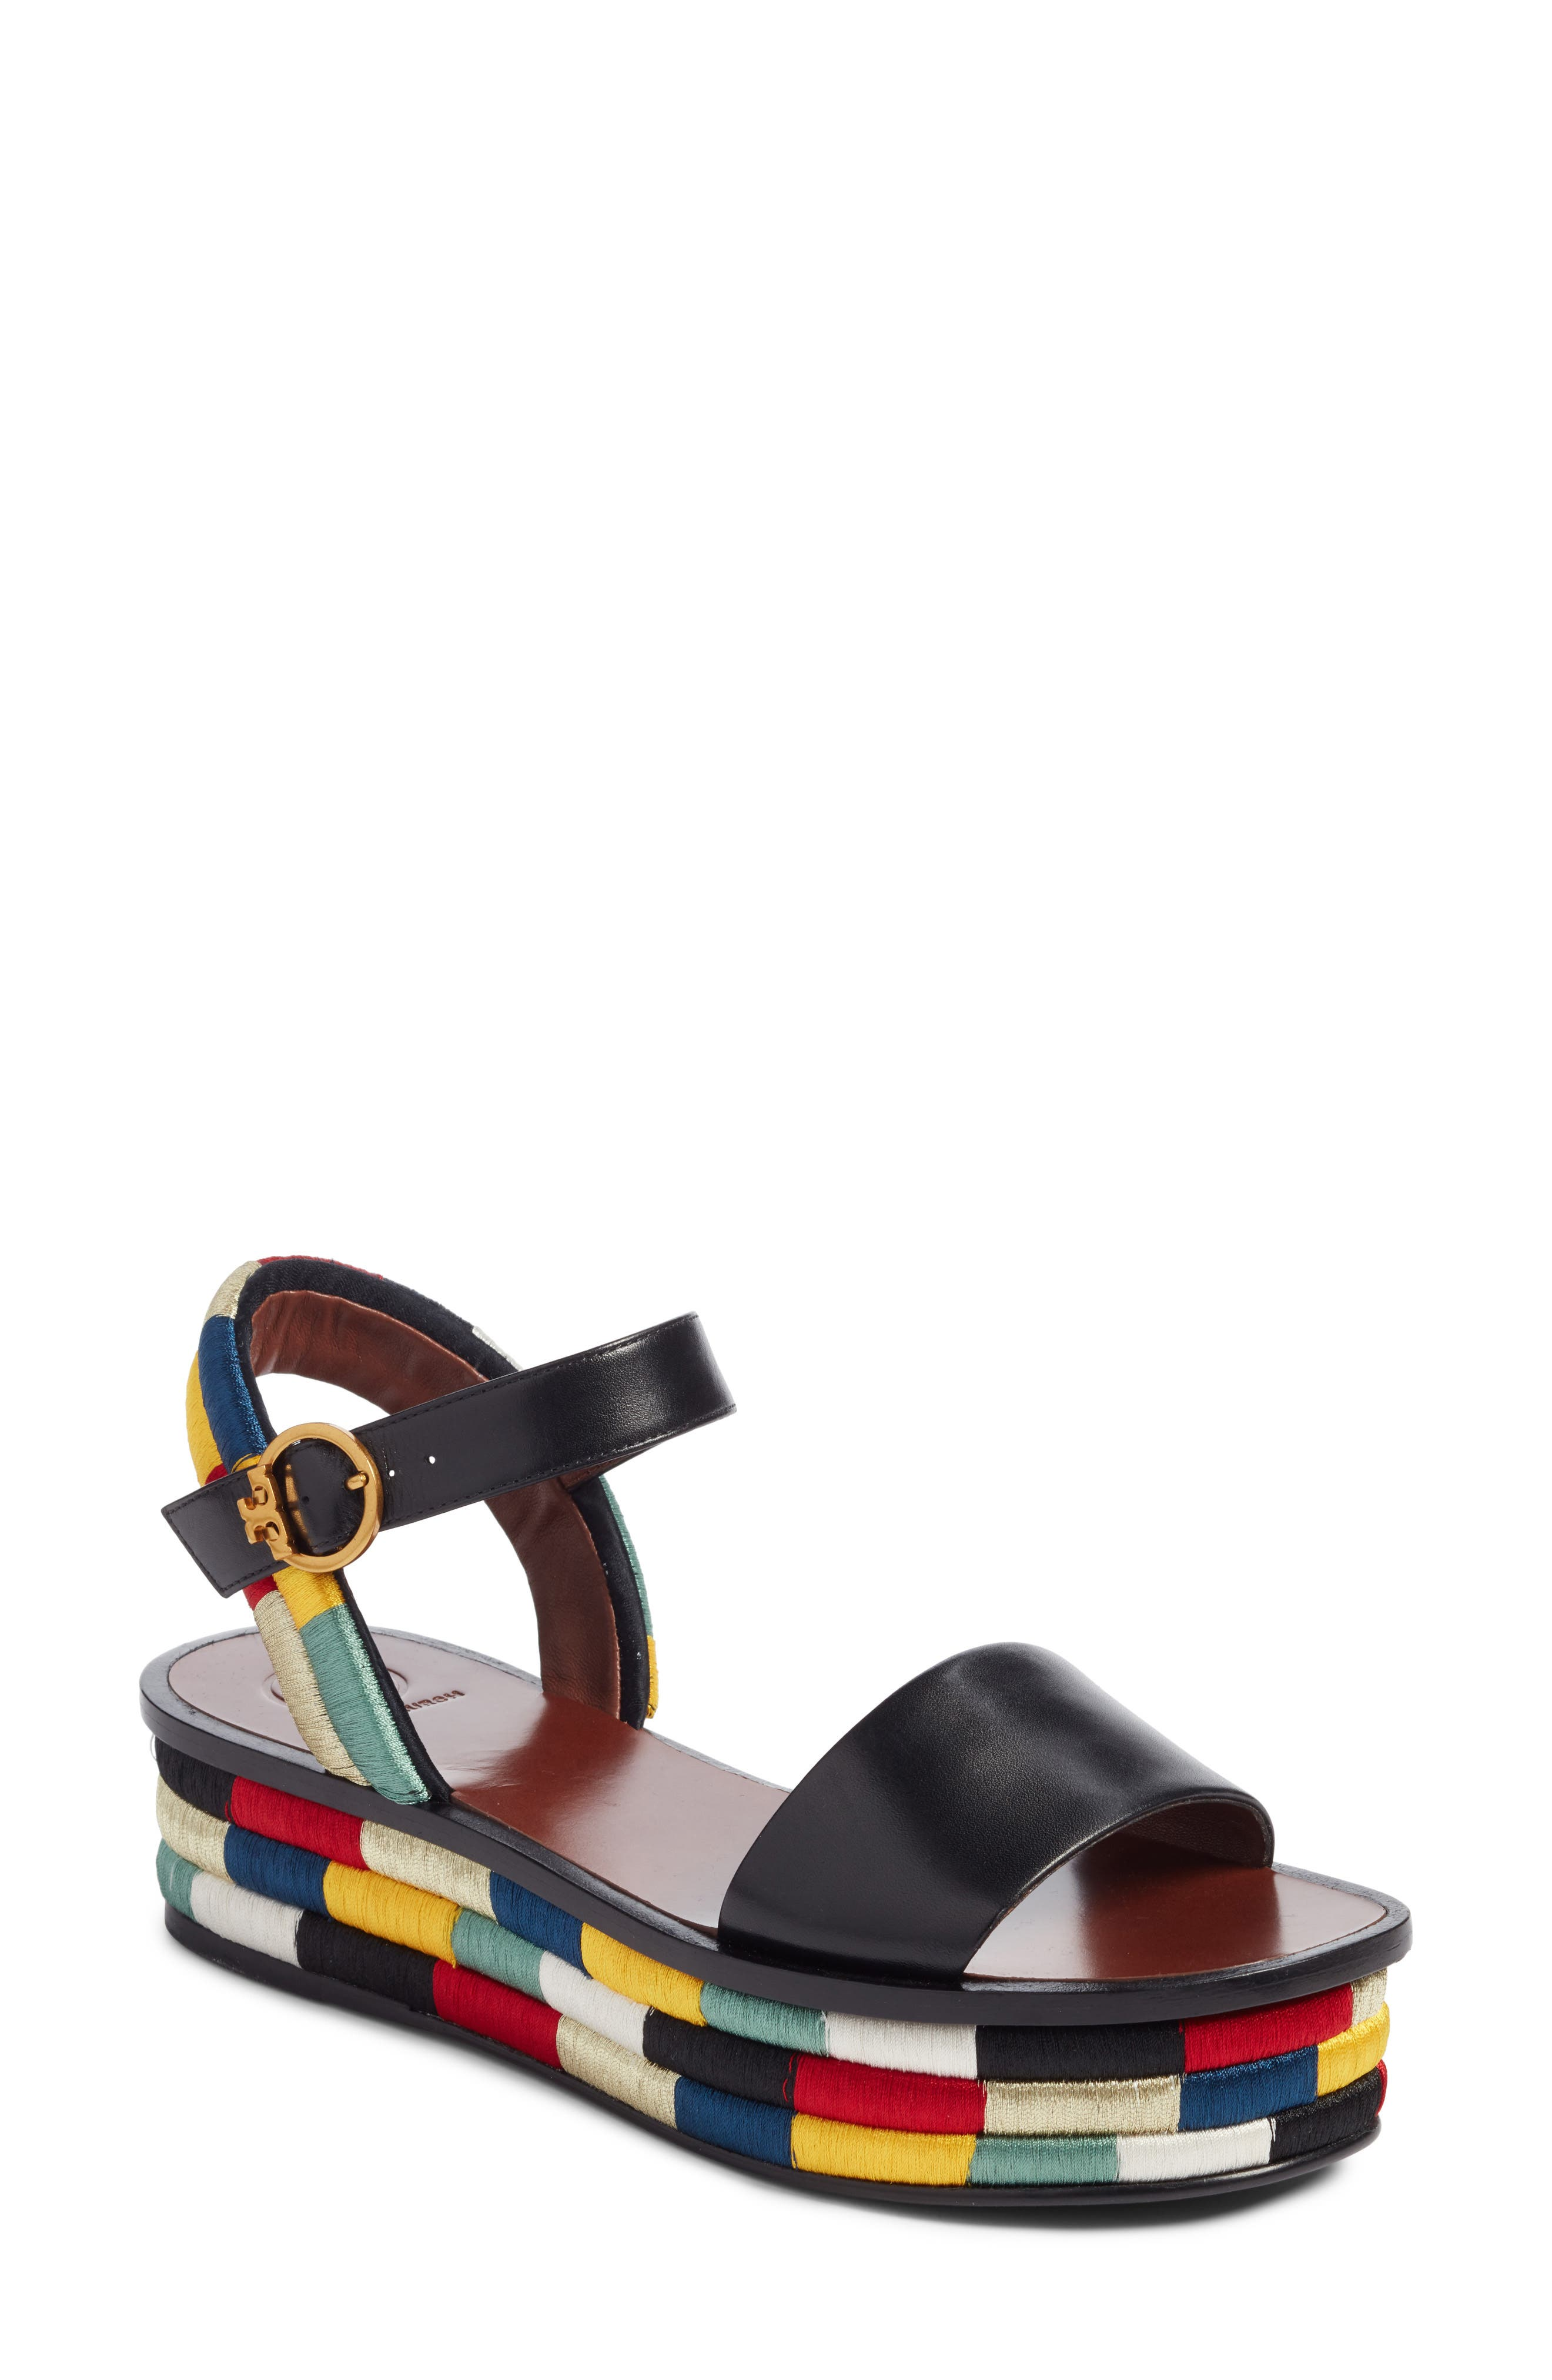 Camilla Platform Sandal,                         Main,                         color, 001